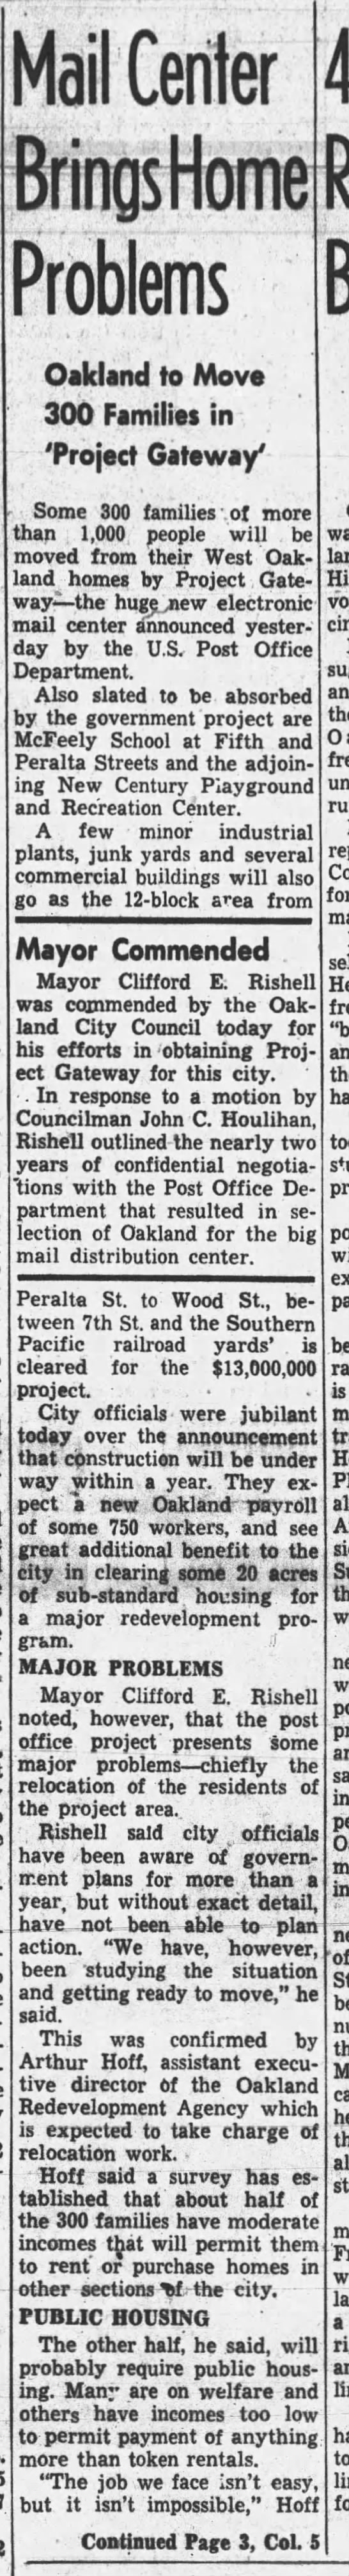 1959 Aug 27-Mail Center Brings Home Problems_1 -